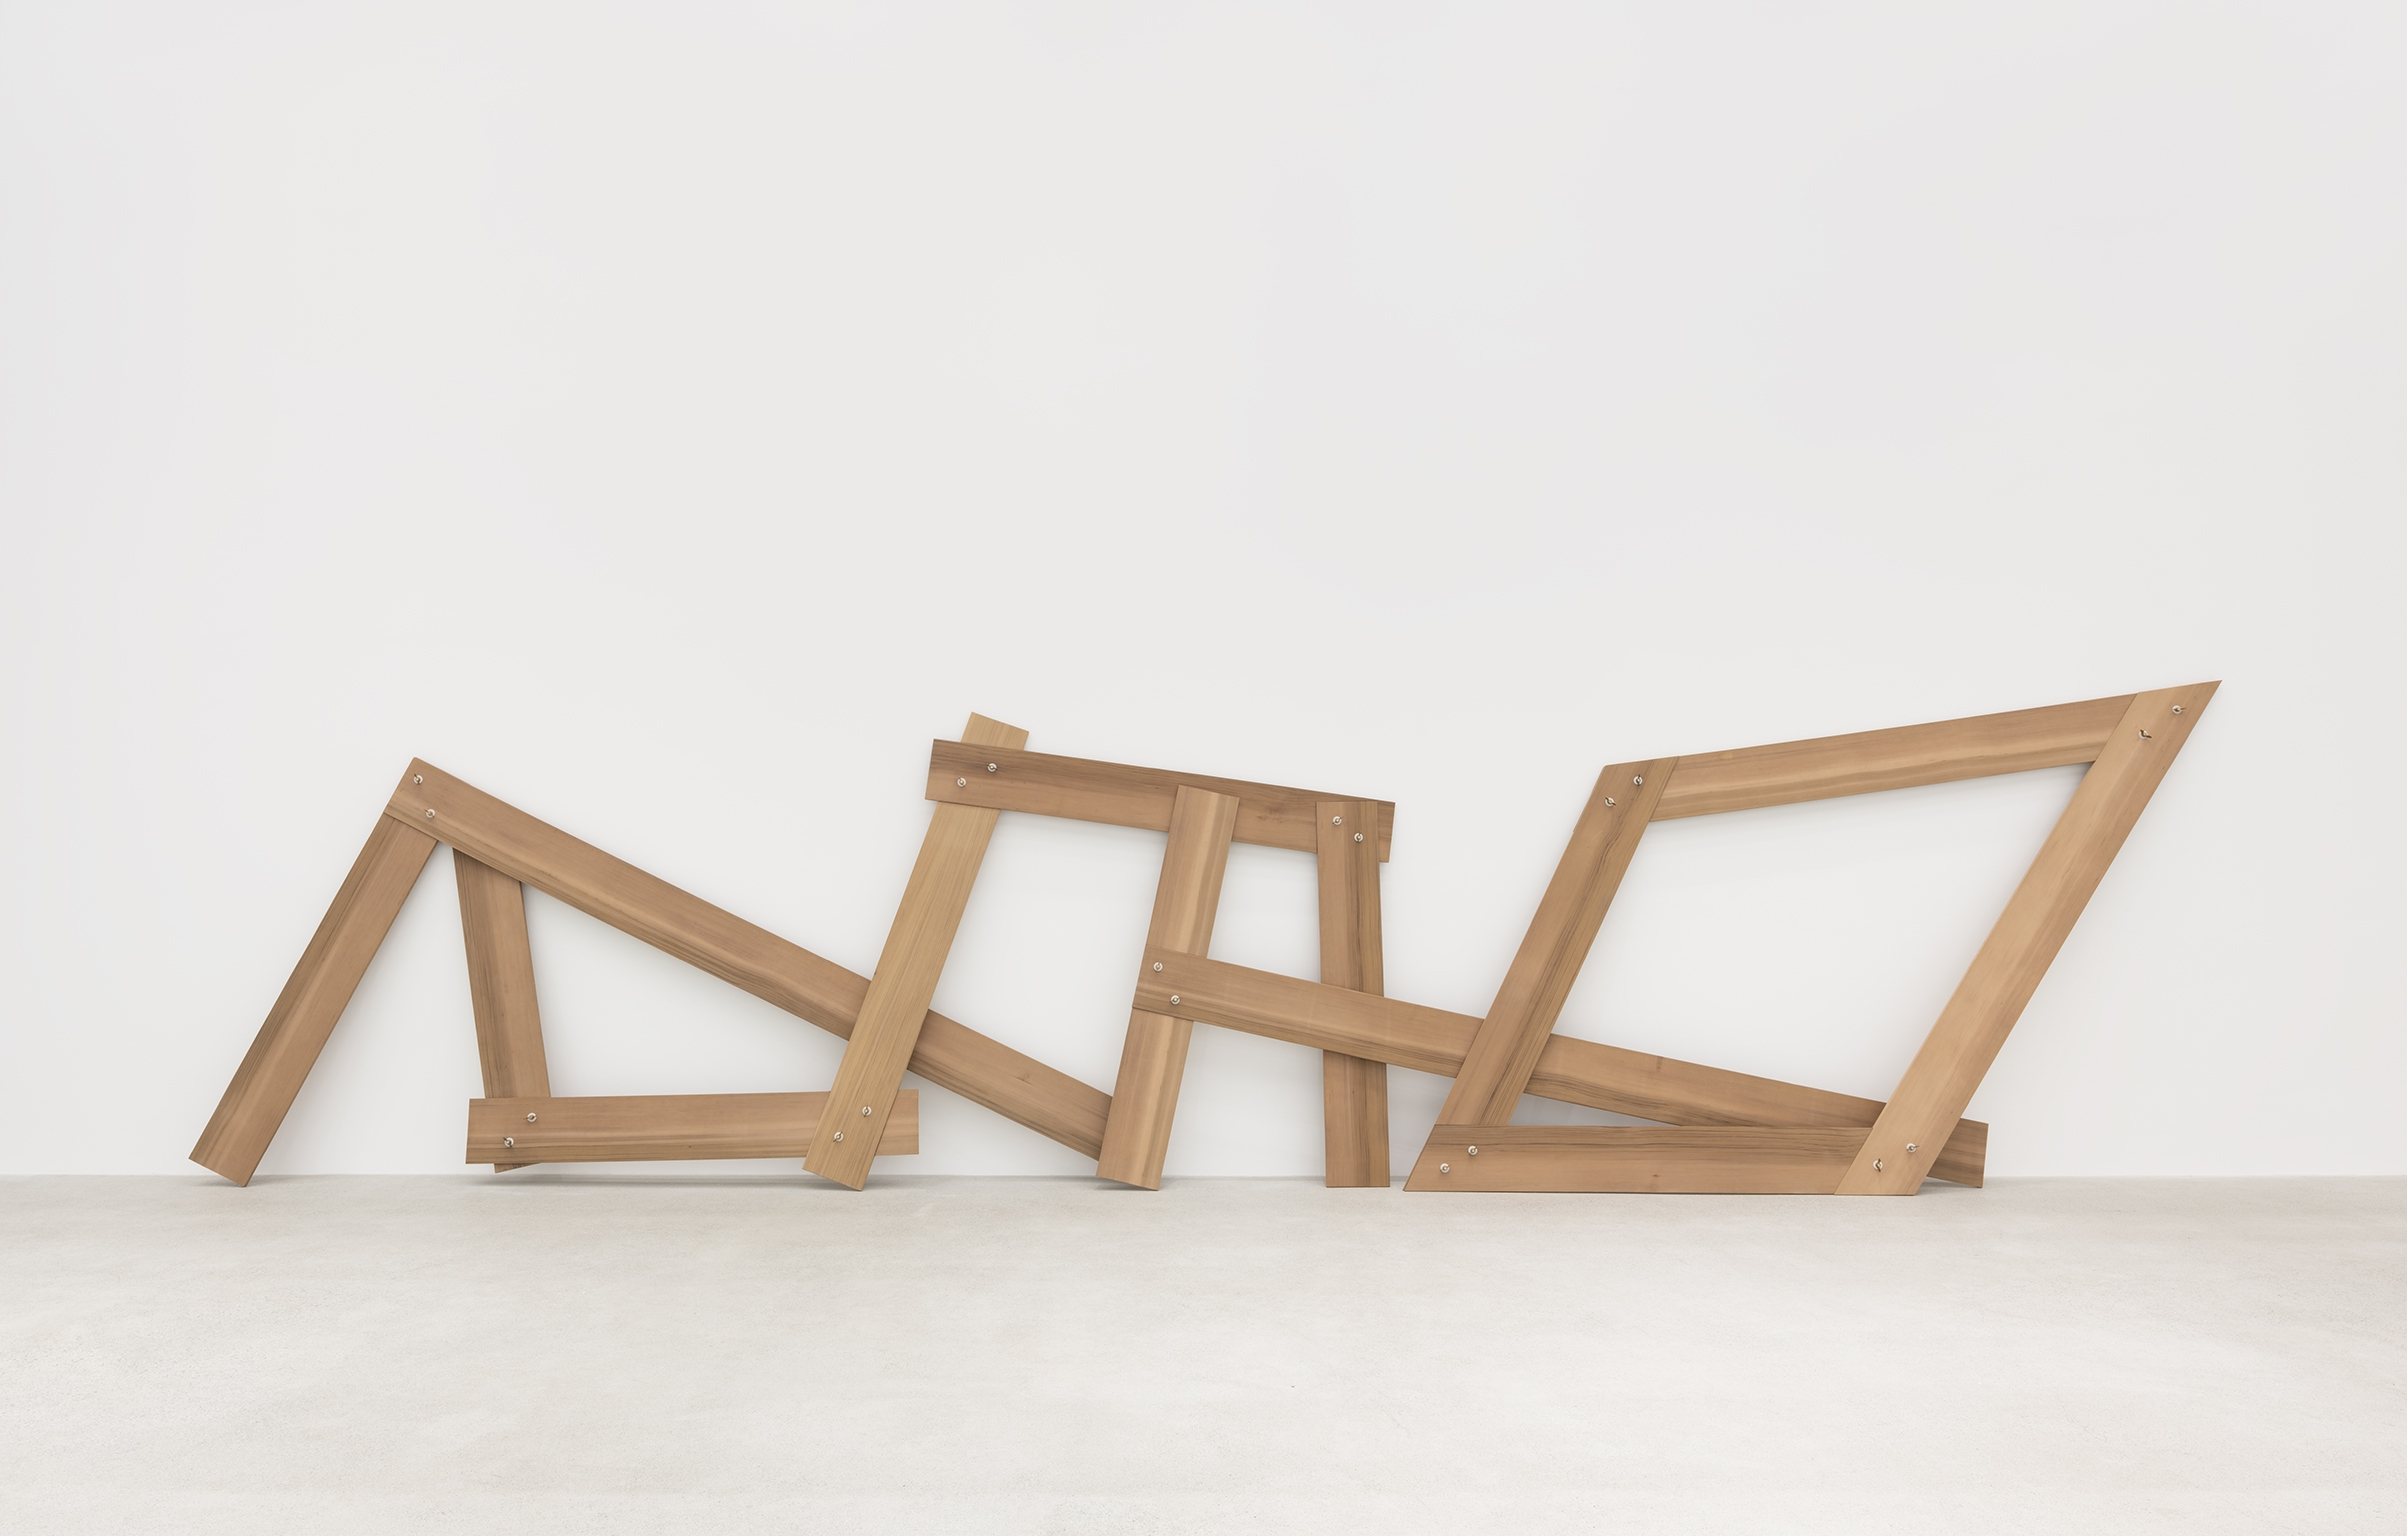 Christina Mackie, Lots/lost (The confusion part I), 2012, cedar, brass, nylon, 94 x 388 x 19 in. (238 x 986 x 48 cm) by